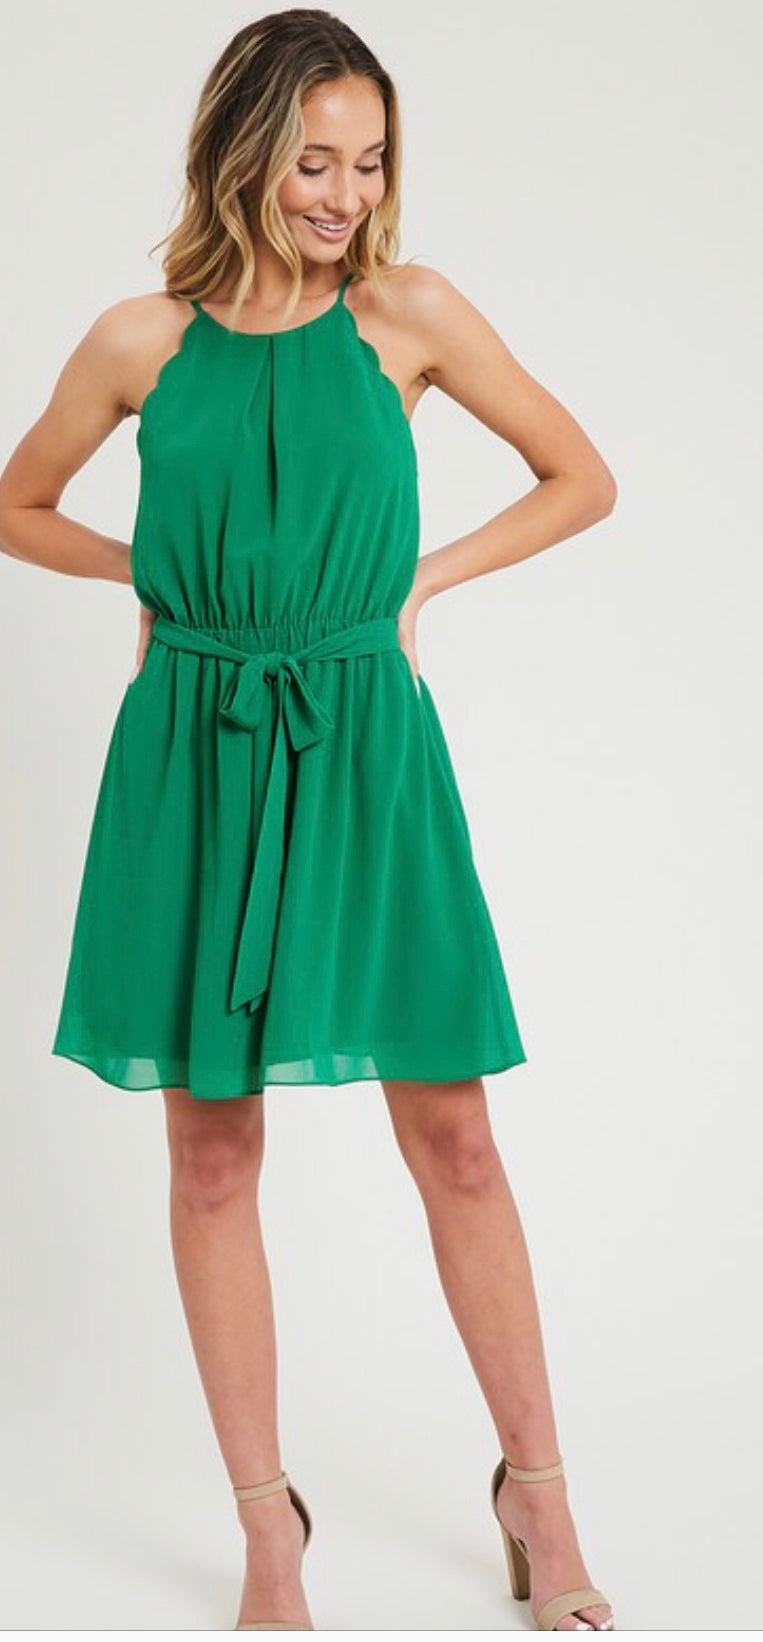 Green scallop edge dress with front tie